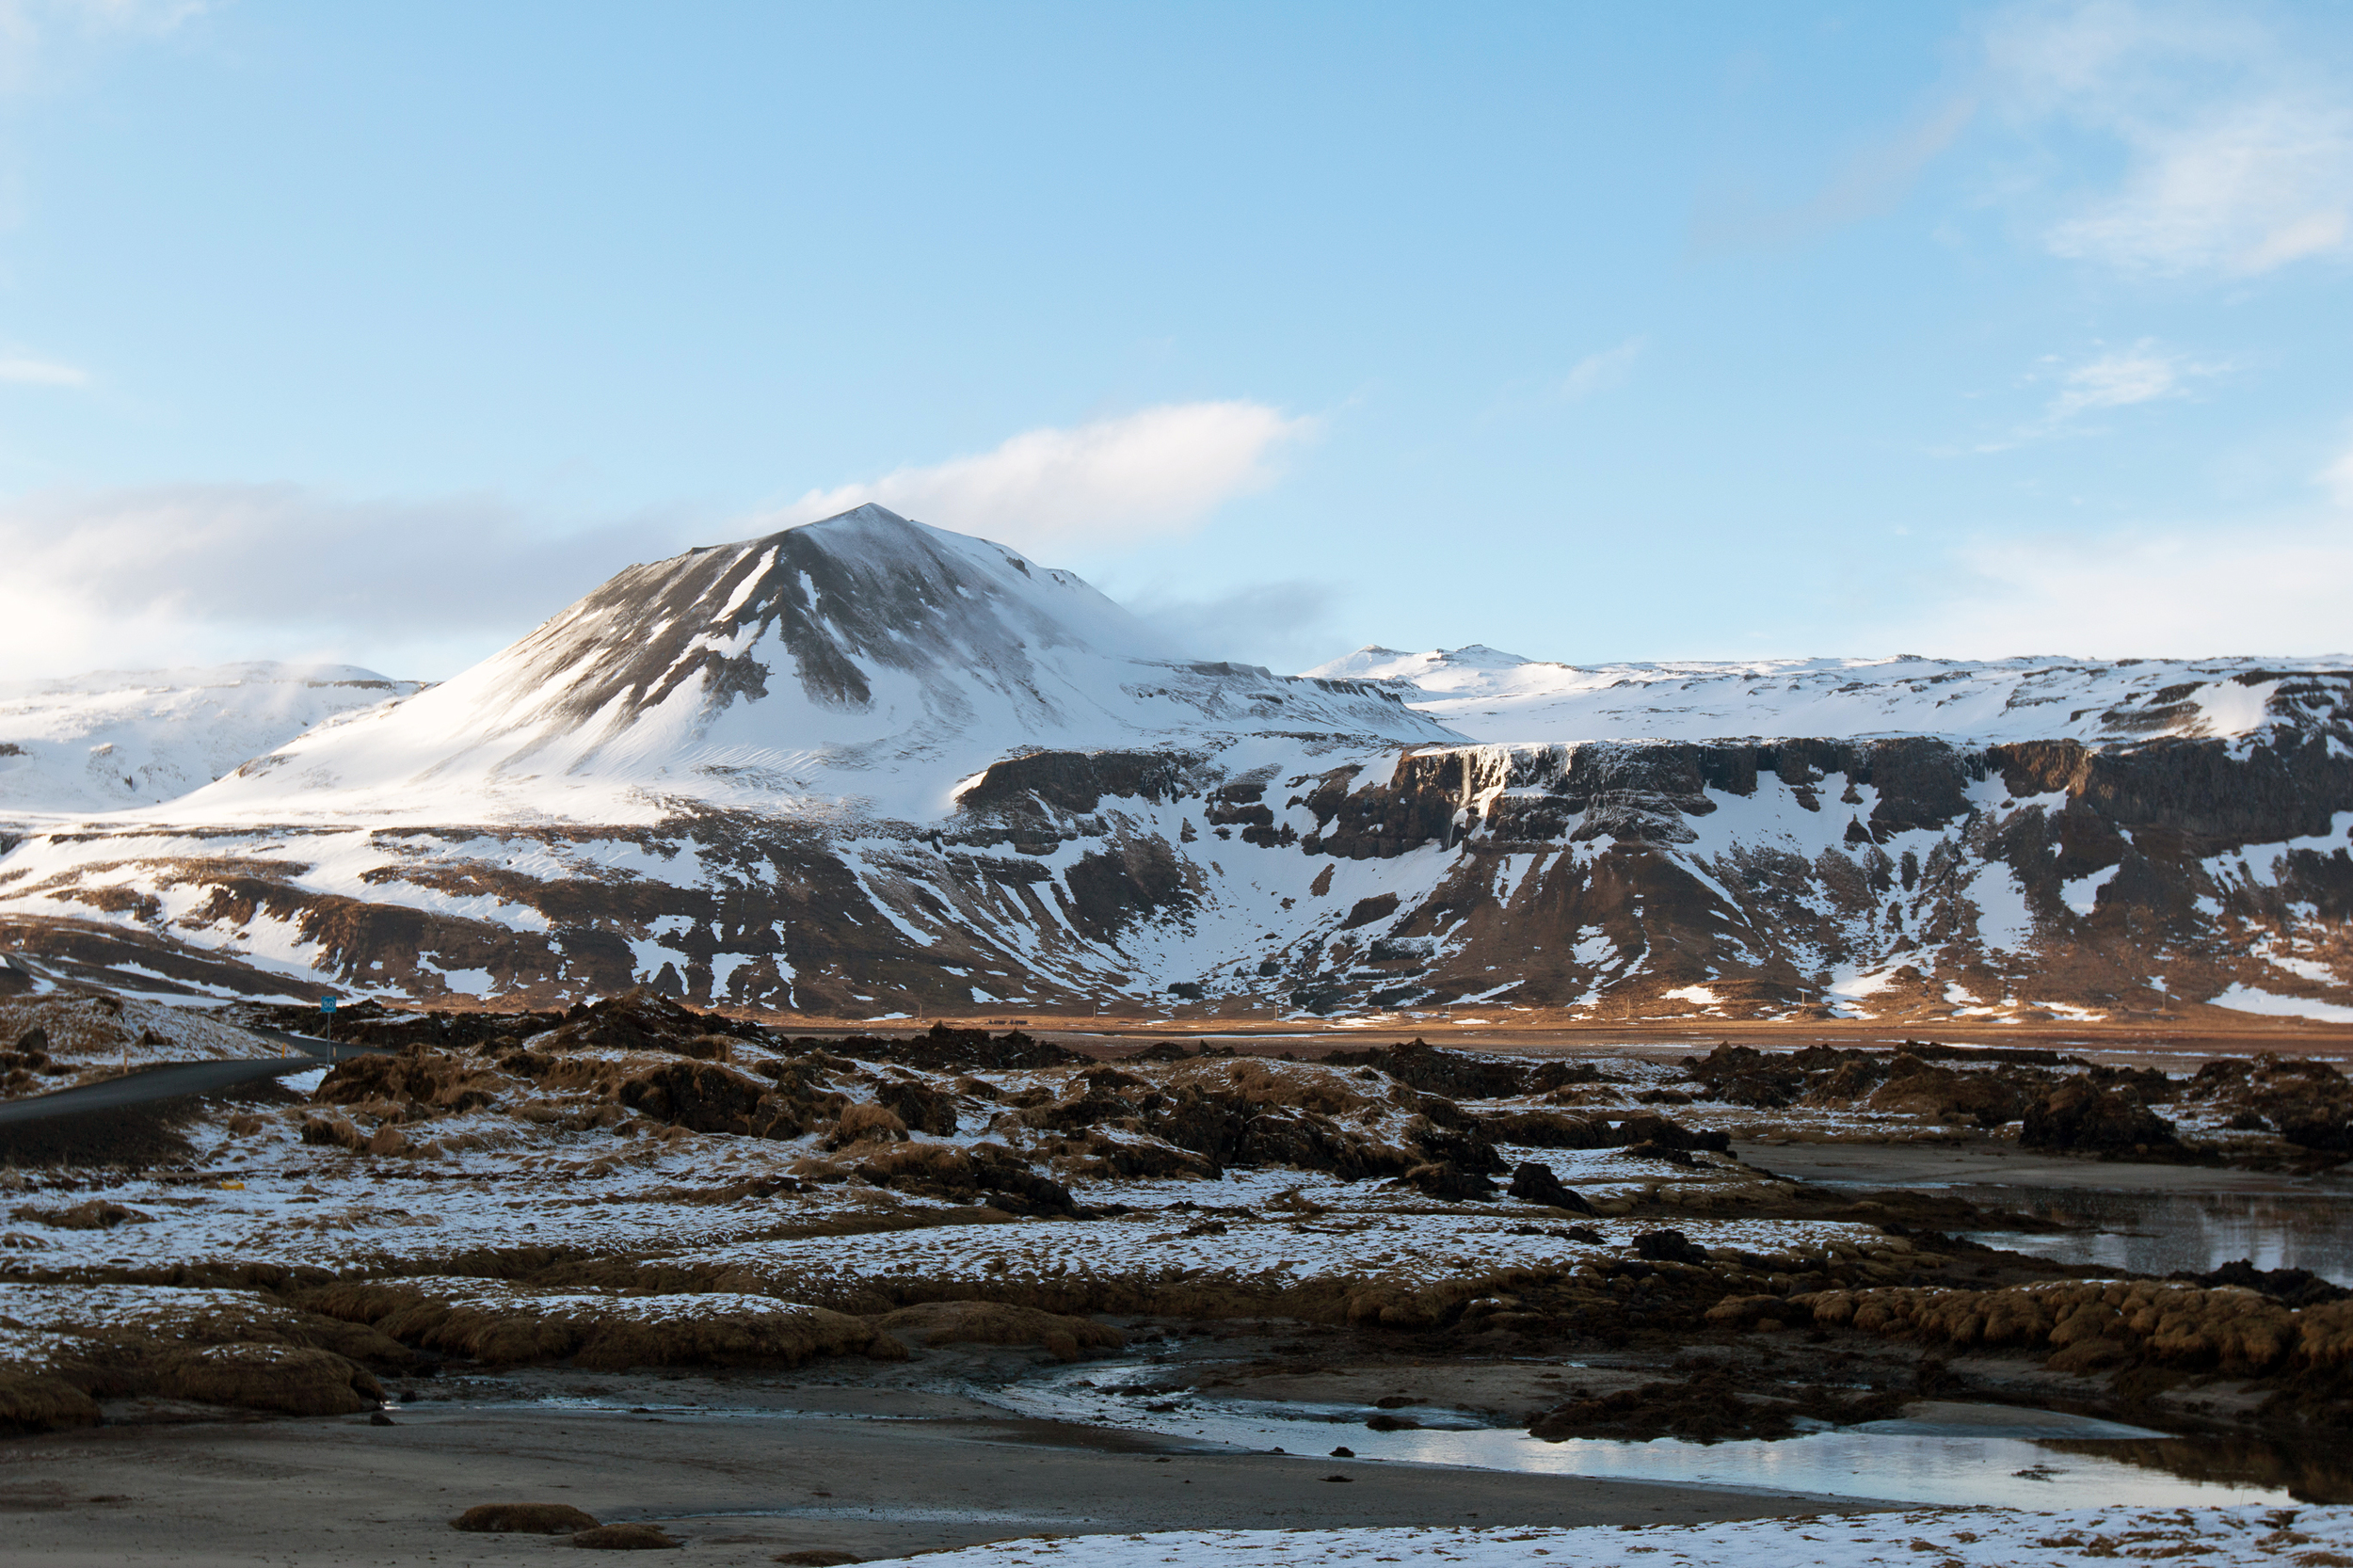 The view from Room #1 at Hotel Búðir.